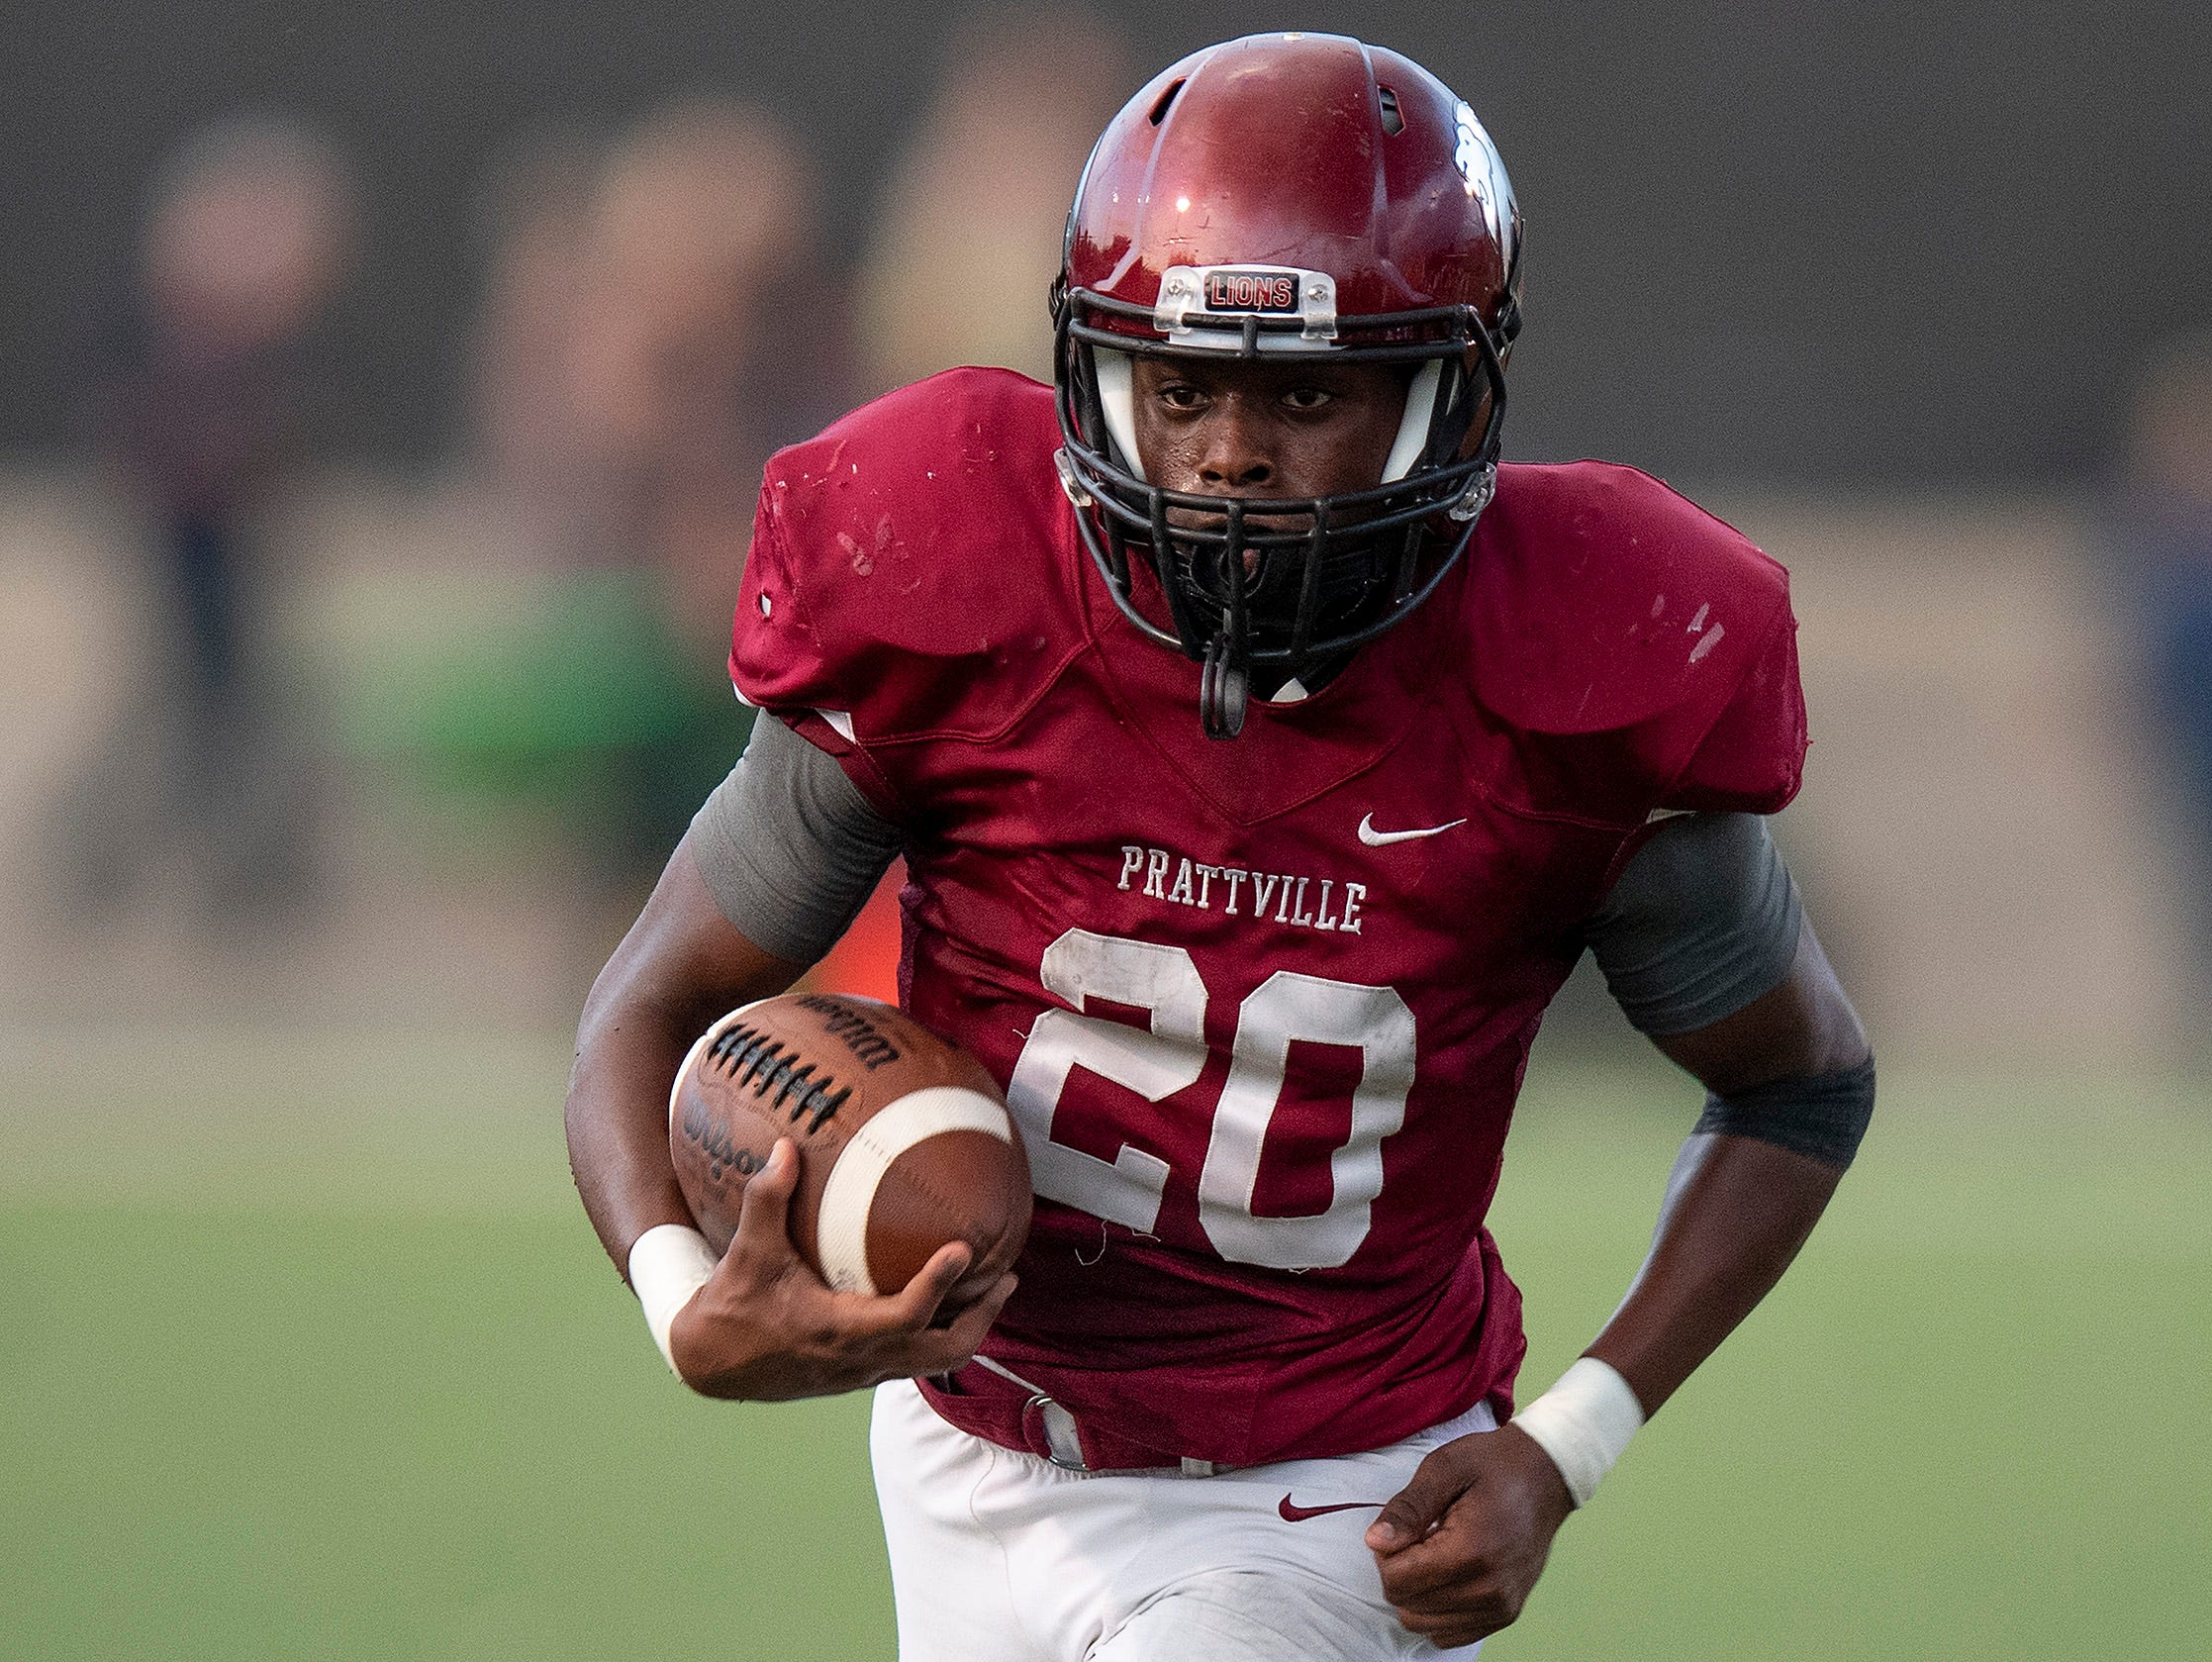 Prattville's Keandre Powell carries against Foley at Stanley-Jensen Stadium in Prattville, Ala., on Friday August 24, 2018.